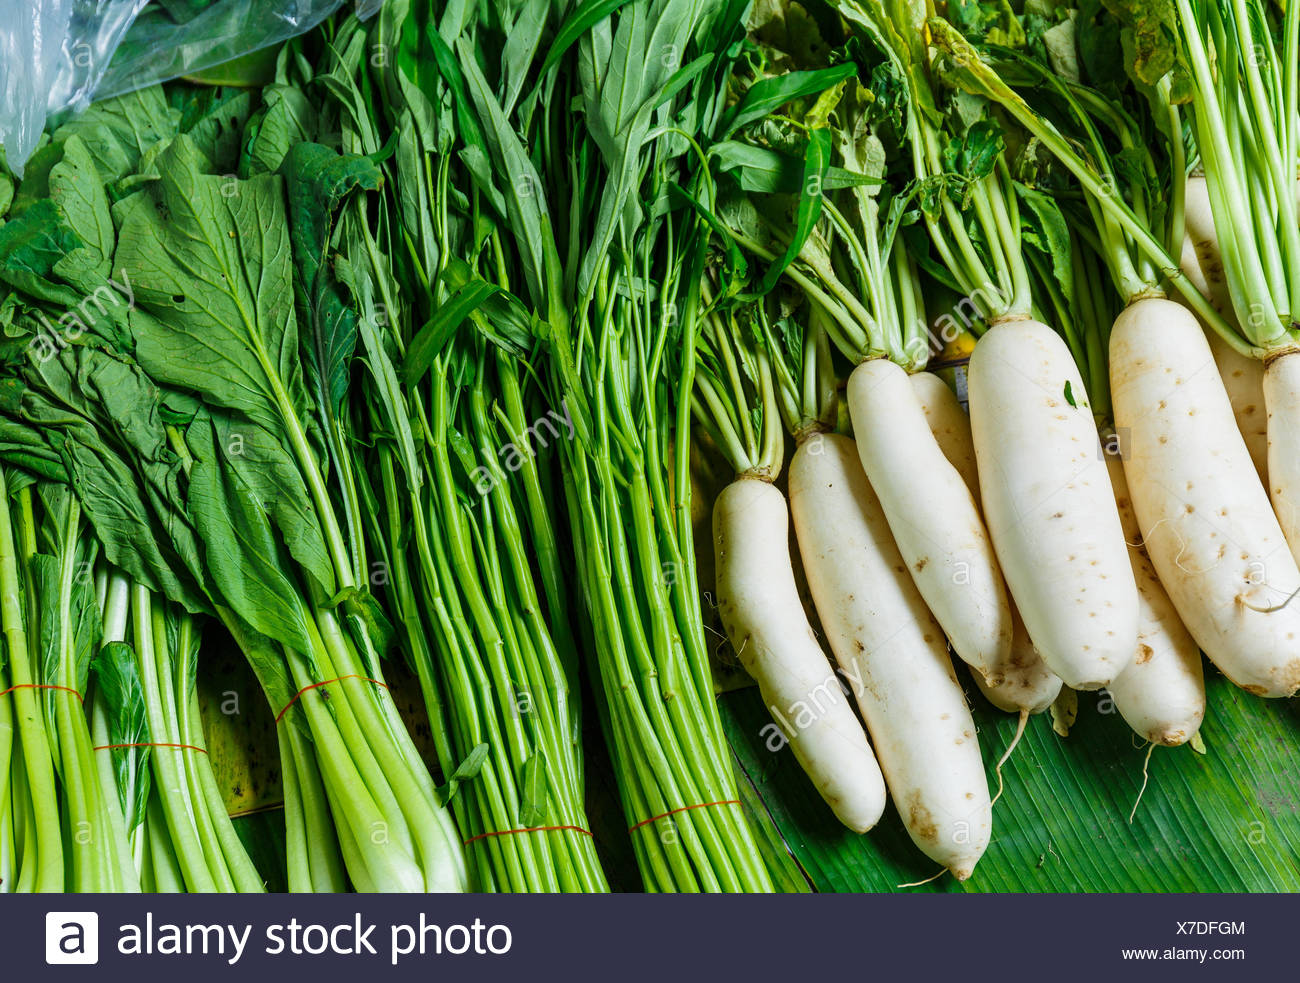 food aliment sell agriculture farming harvest root vegetable chinese stalk stem radish product celery organic chop white - Stock Image